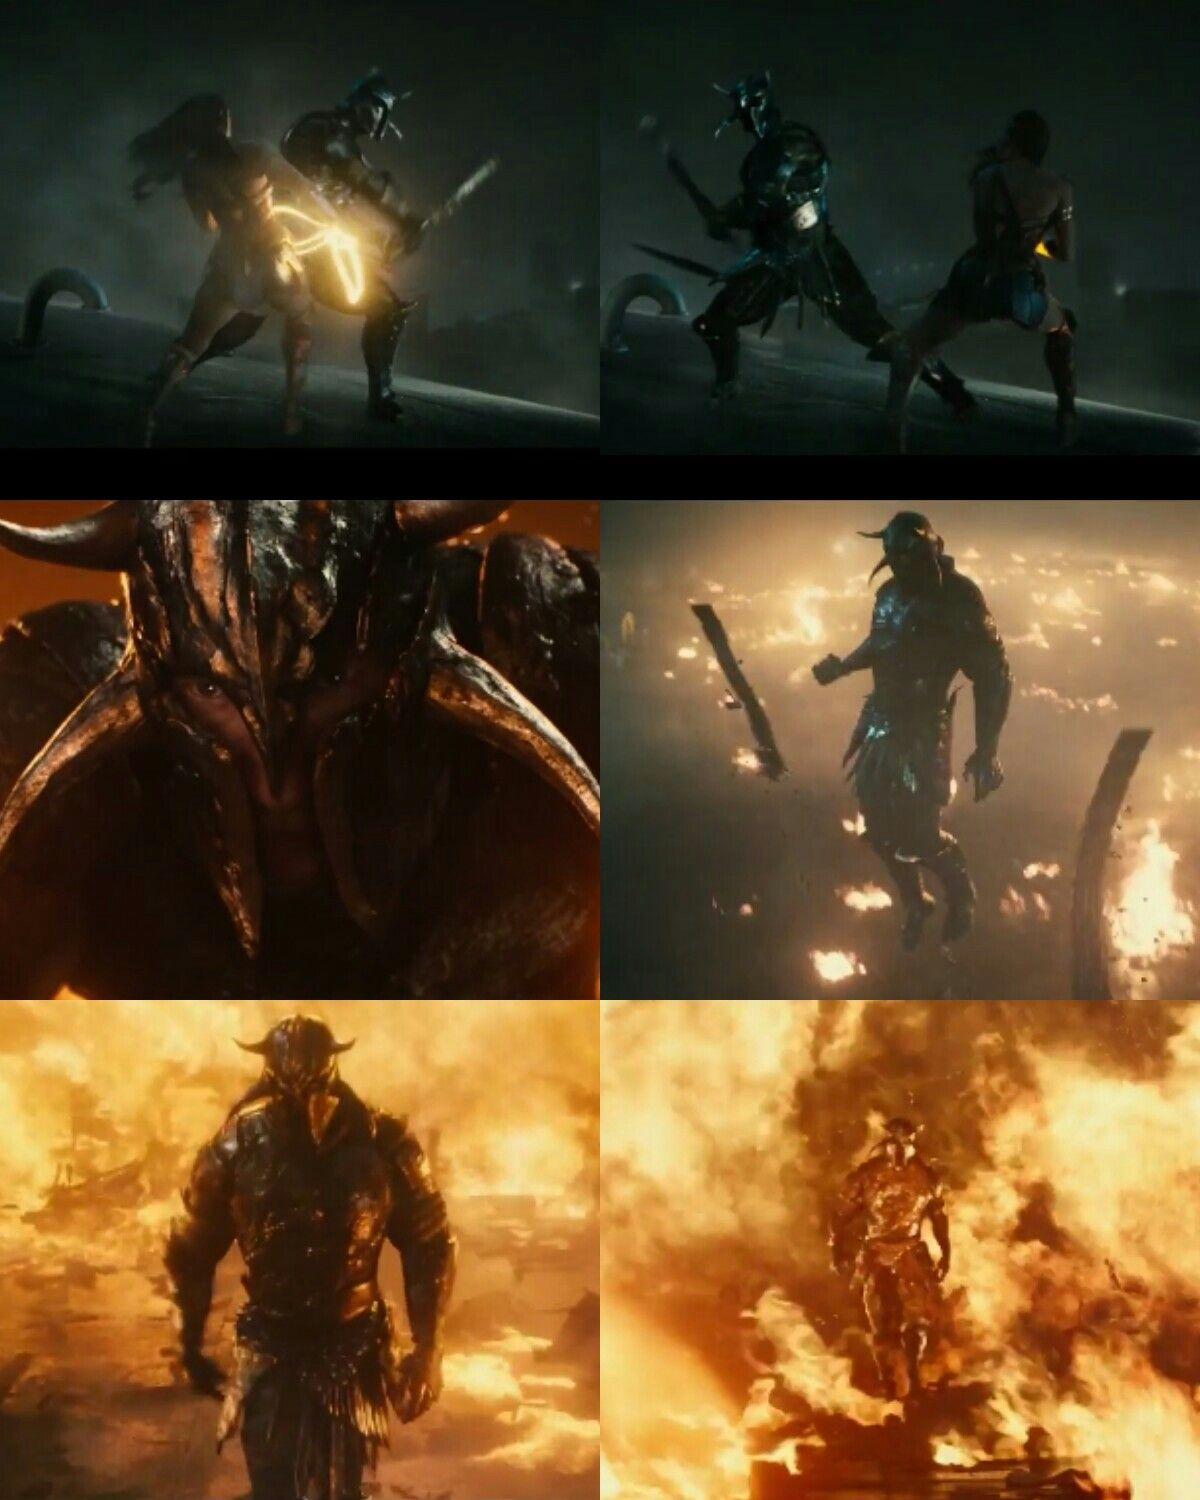 Ares The God Of War By Wonder Woman Movie 2017  Maromba -5459